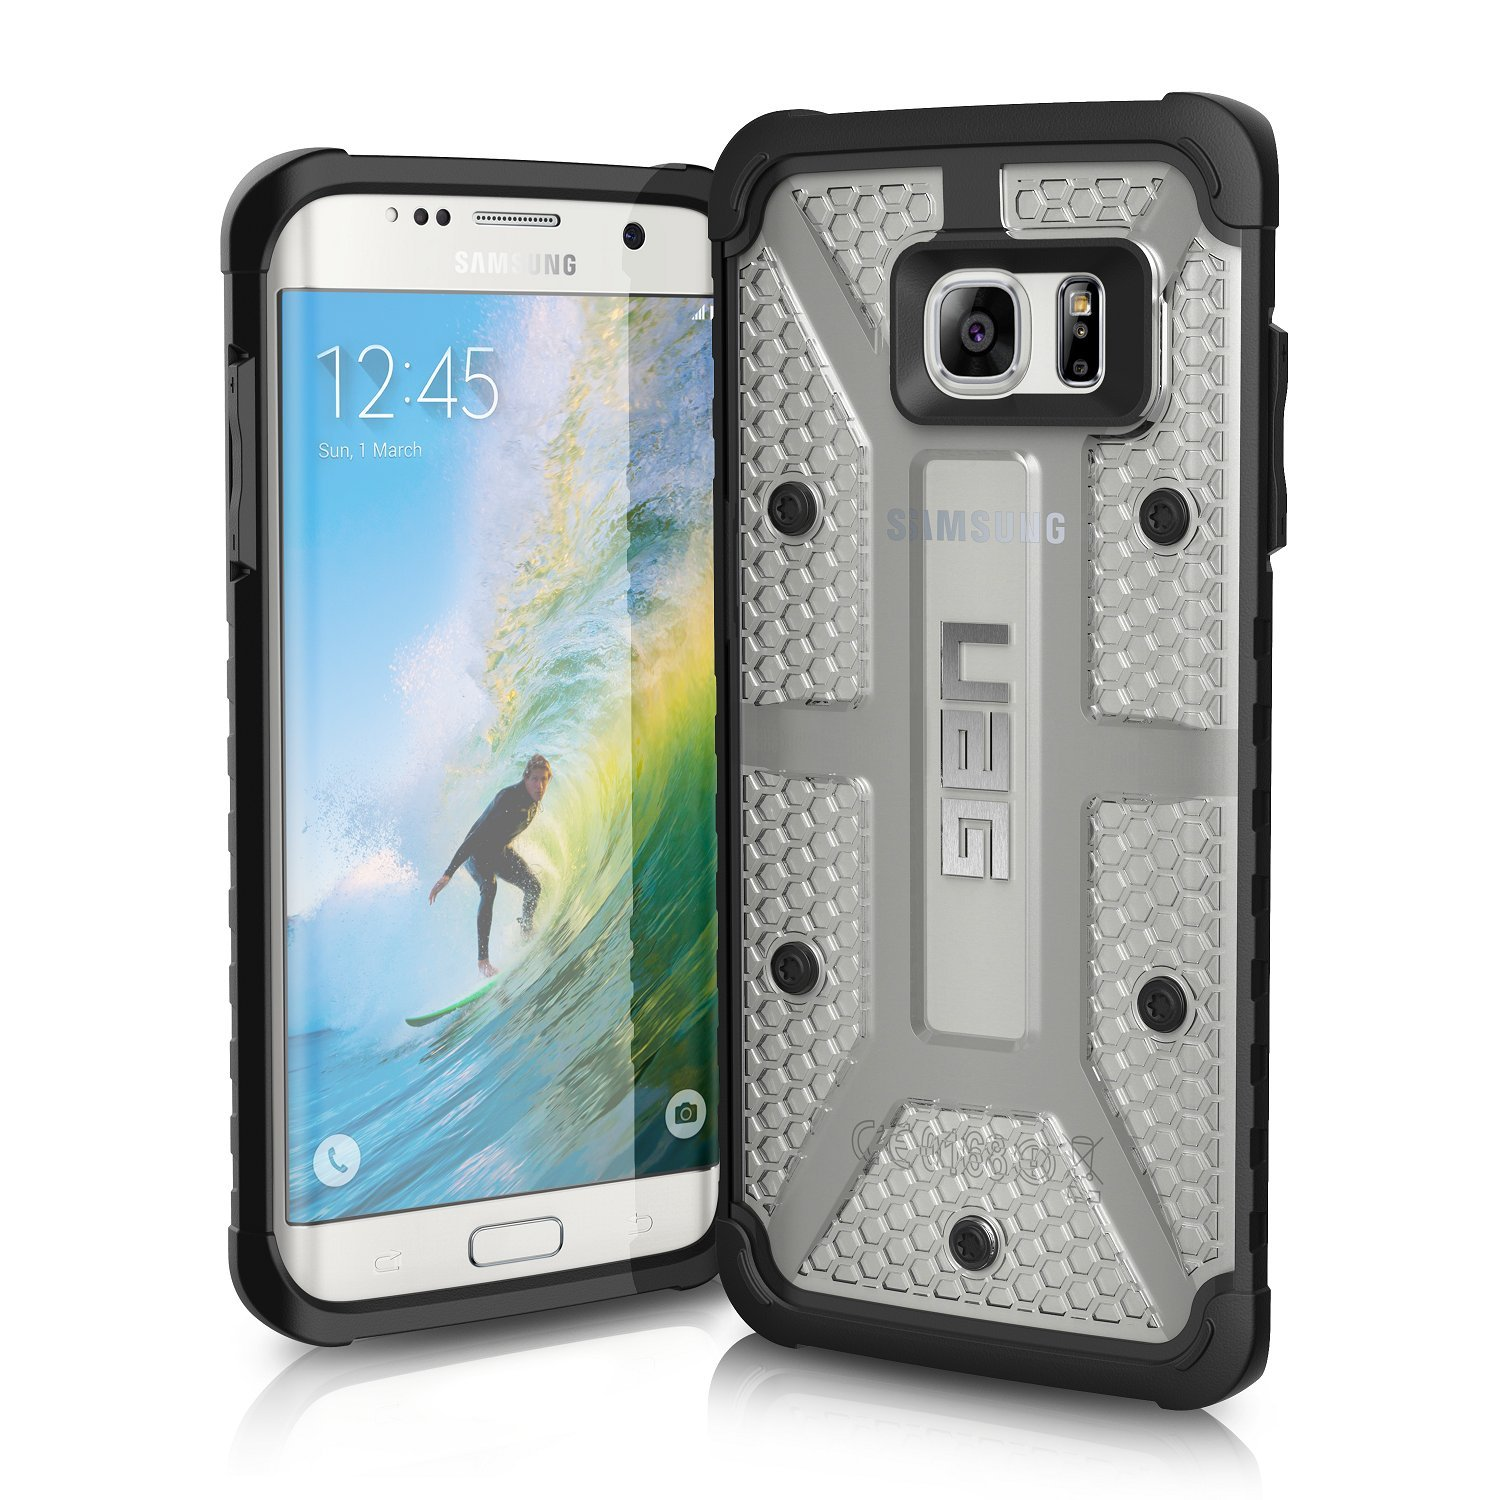 Uag Samsung Galaxy S7 Edge 55 Inch Screen Feather Military Armor Case Flat Spigen Crystal Shell Original Light Composite Ice Drop Tested Phone Cell Phones Accessories